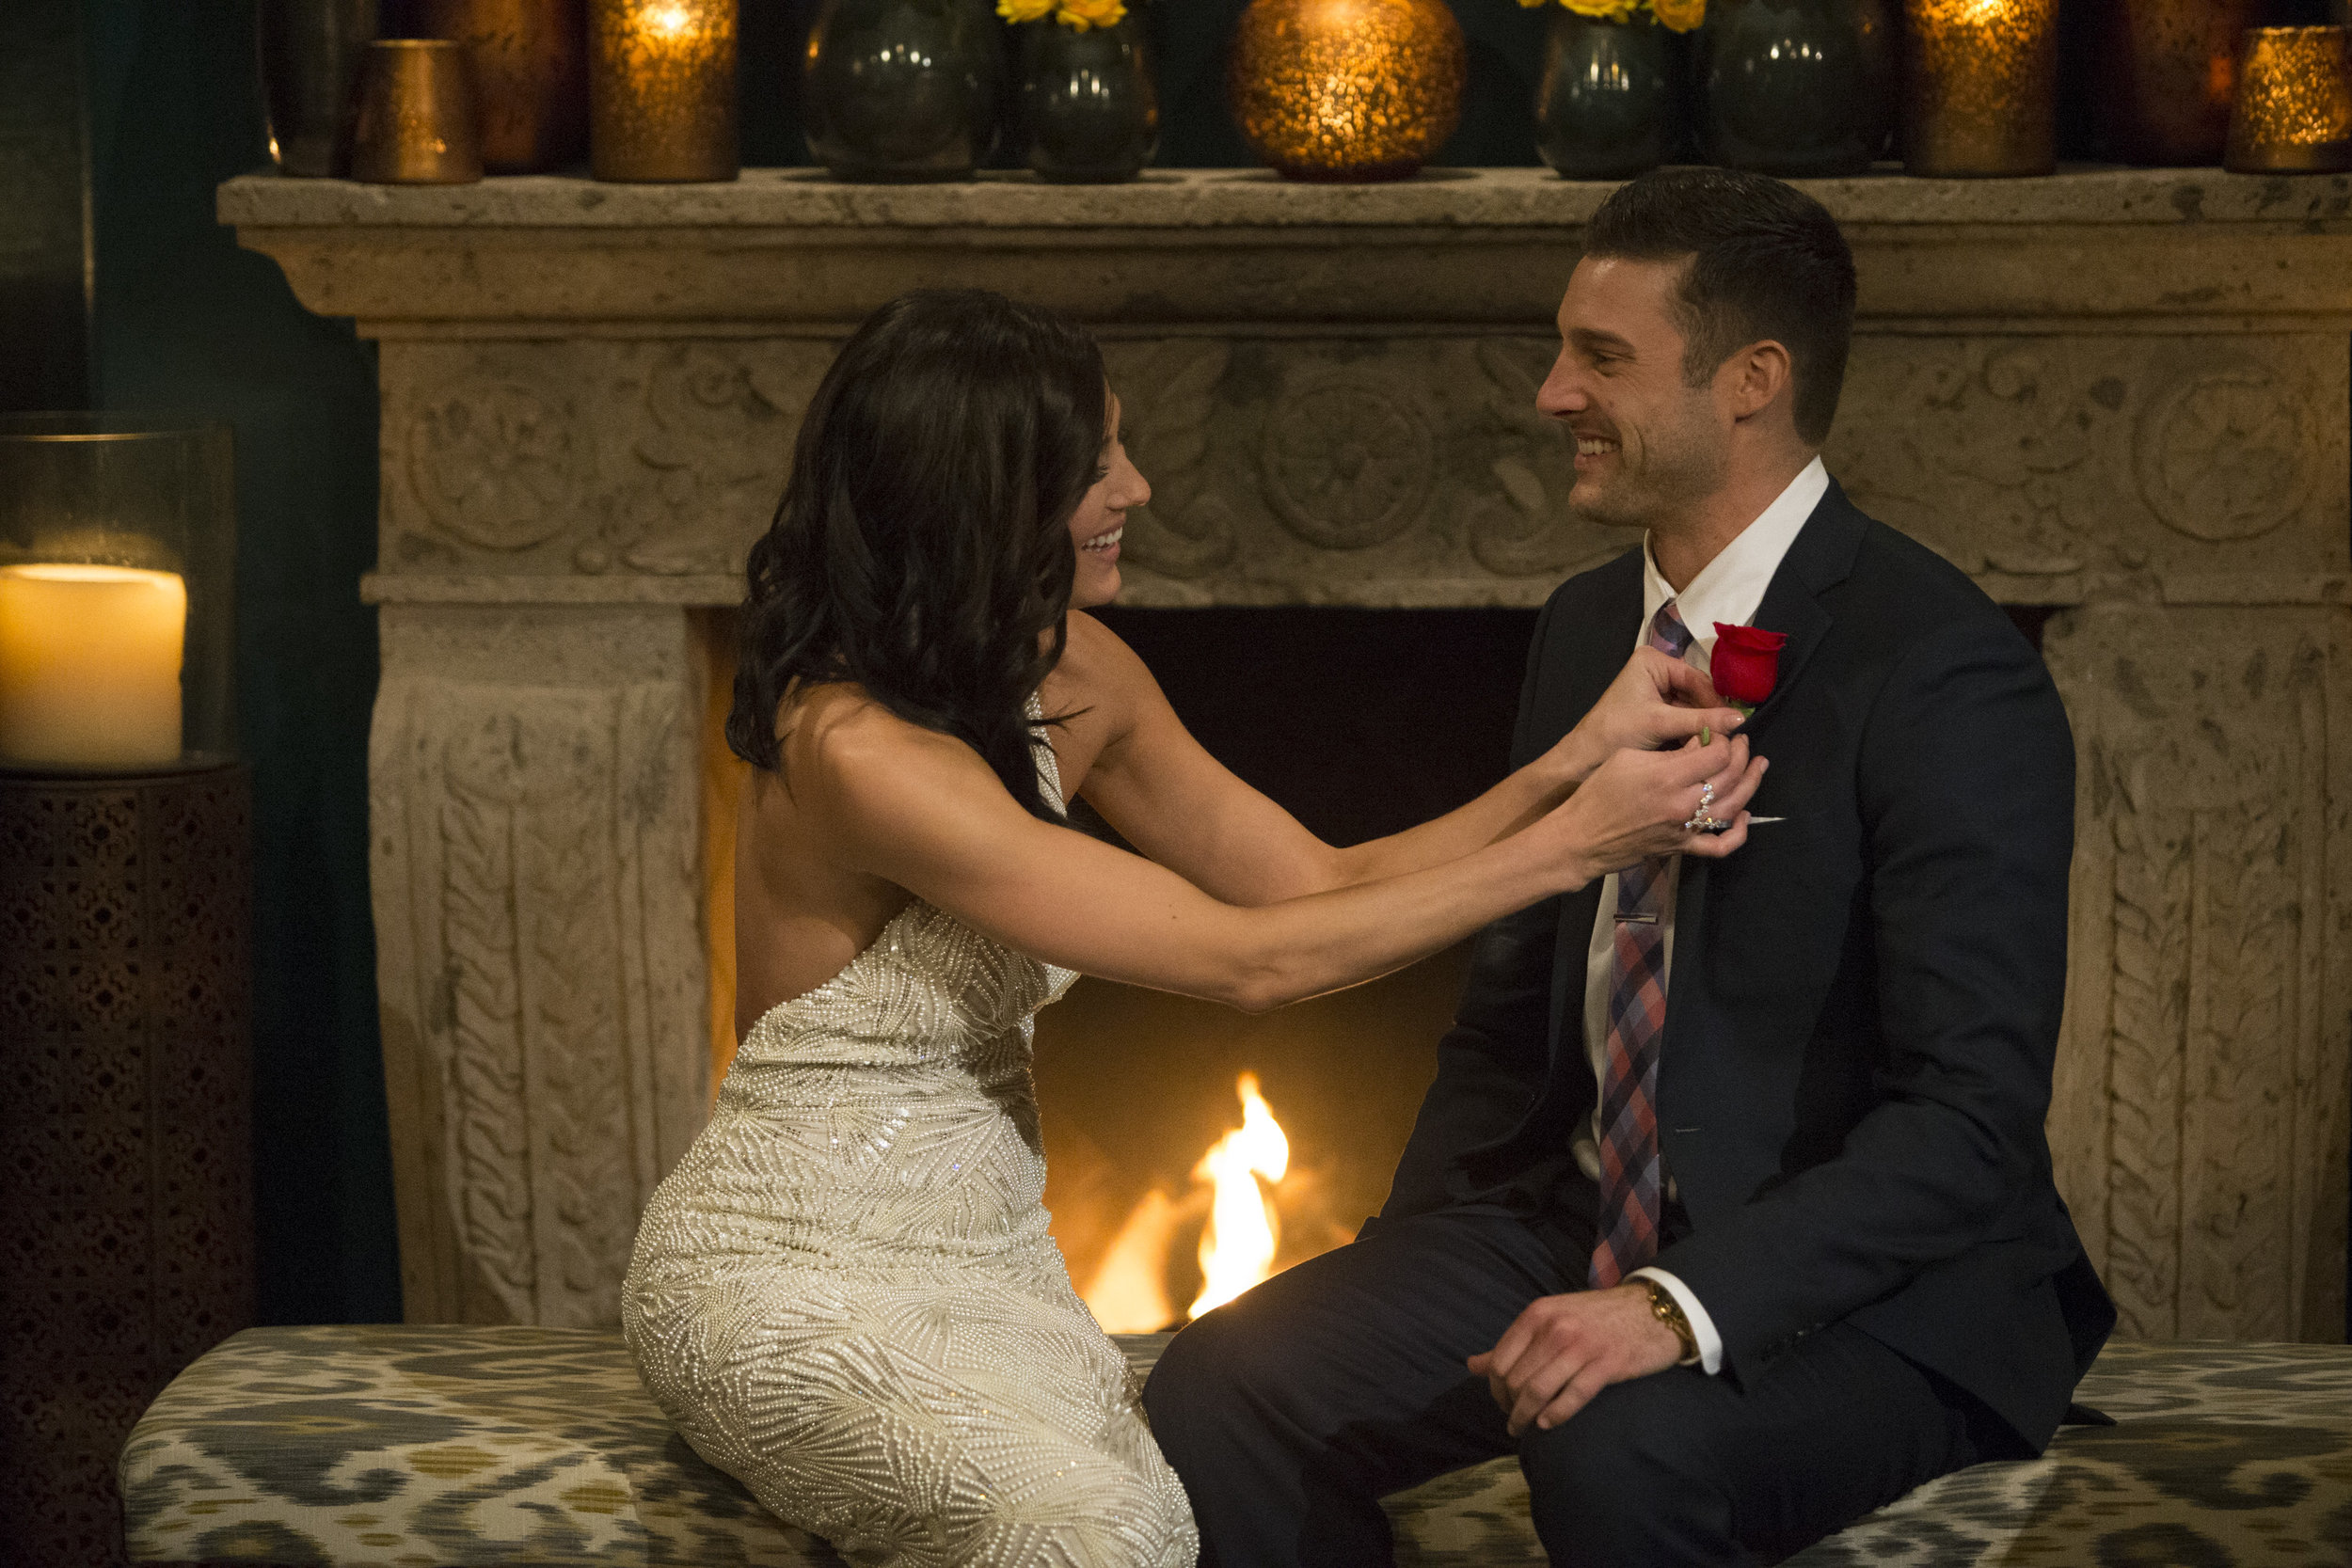 Bachelorette Becca Kufrin gives contestant Garrett Yrigoyen the First Impression rose. She's a Hillary supporter, he's secretly a racist bigot; what could go wrong?(ABC/Paul Hebert)